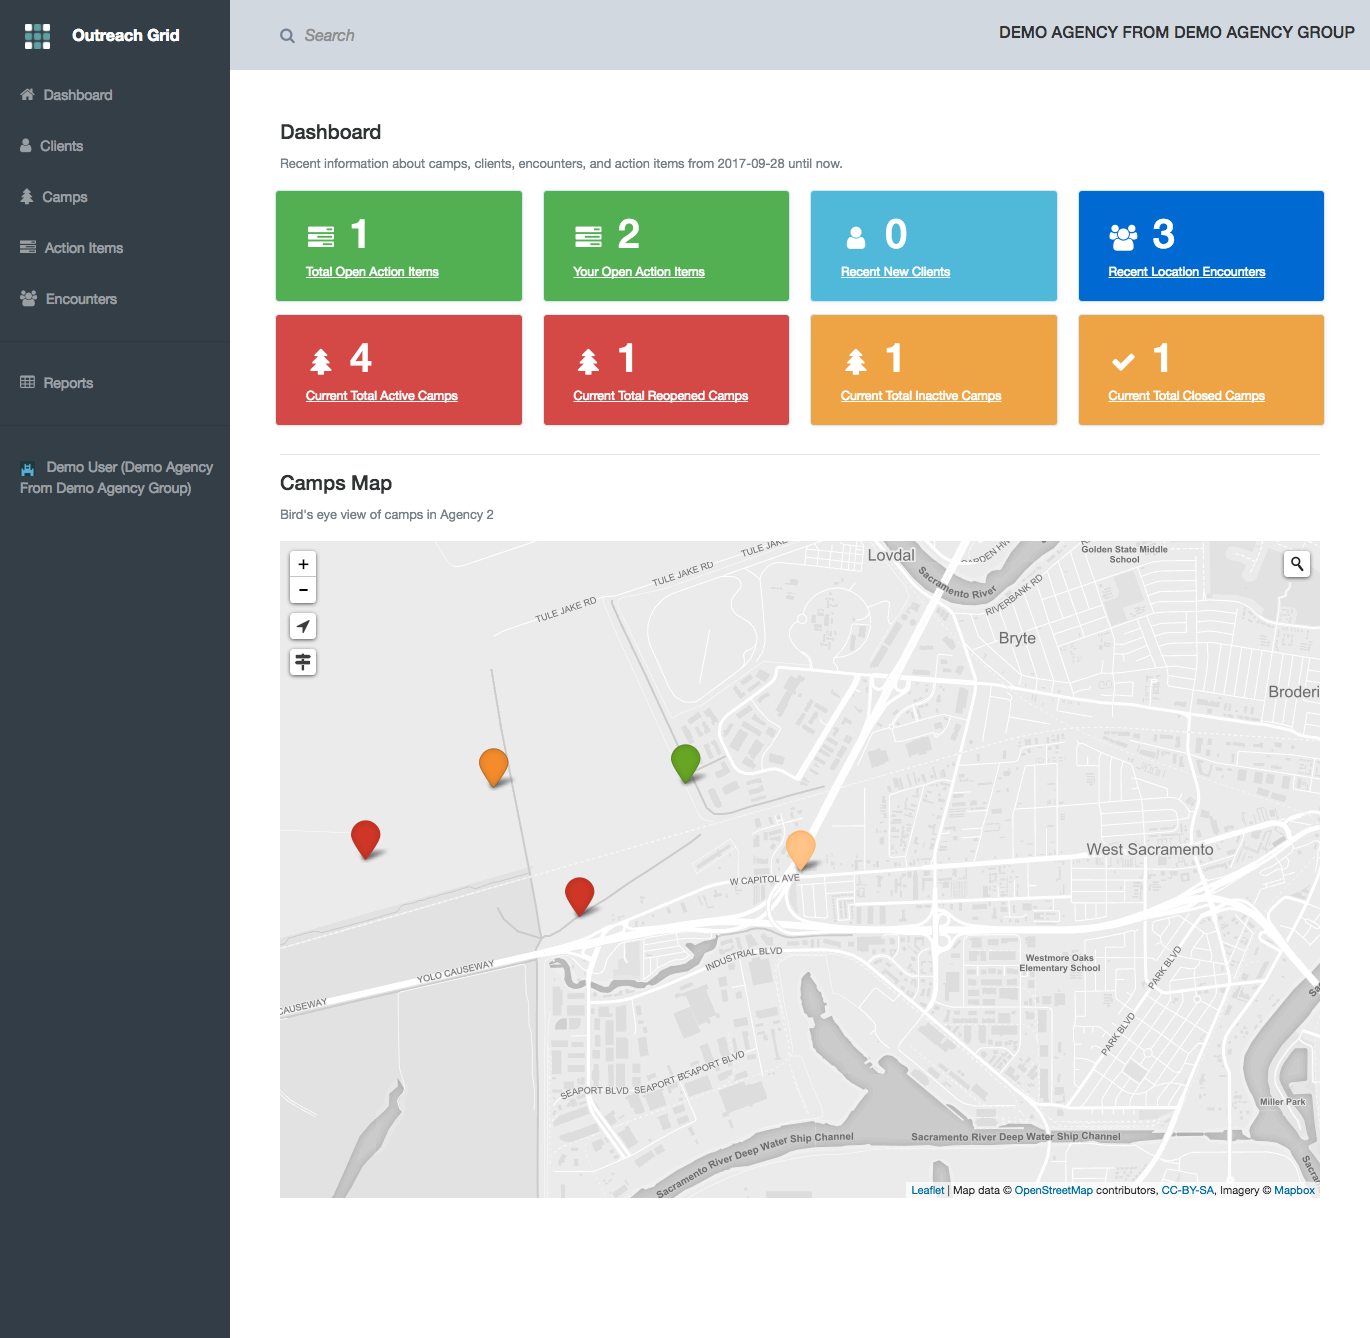 Outreach grid dashboard screenshot